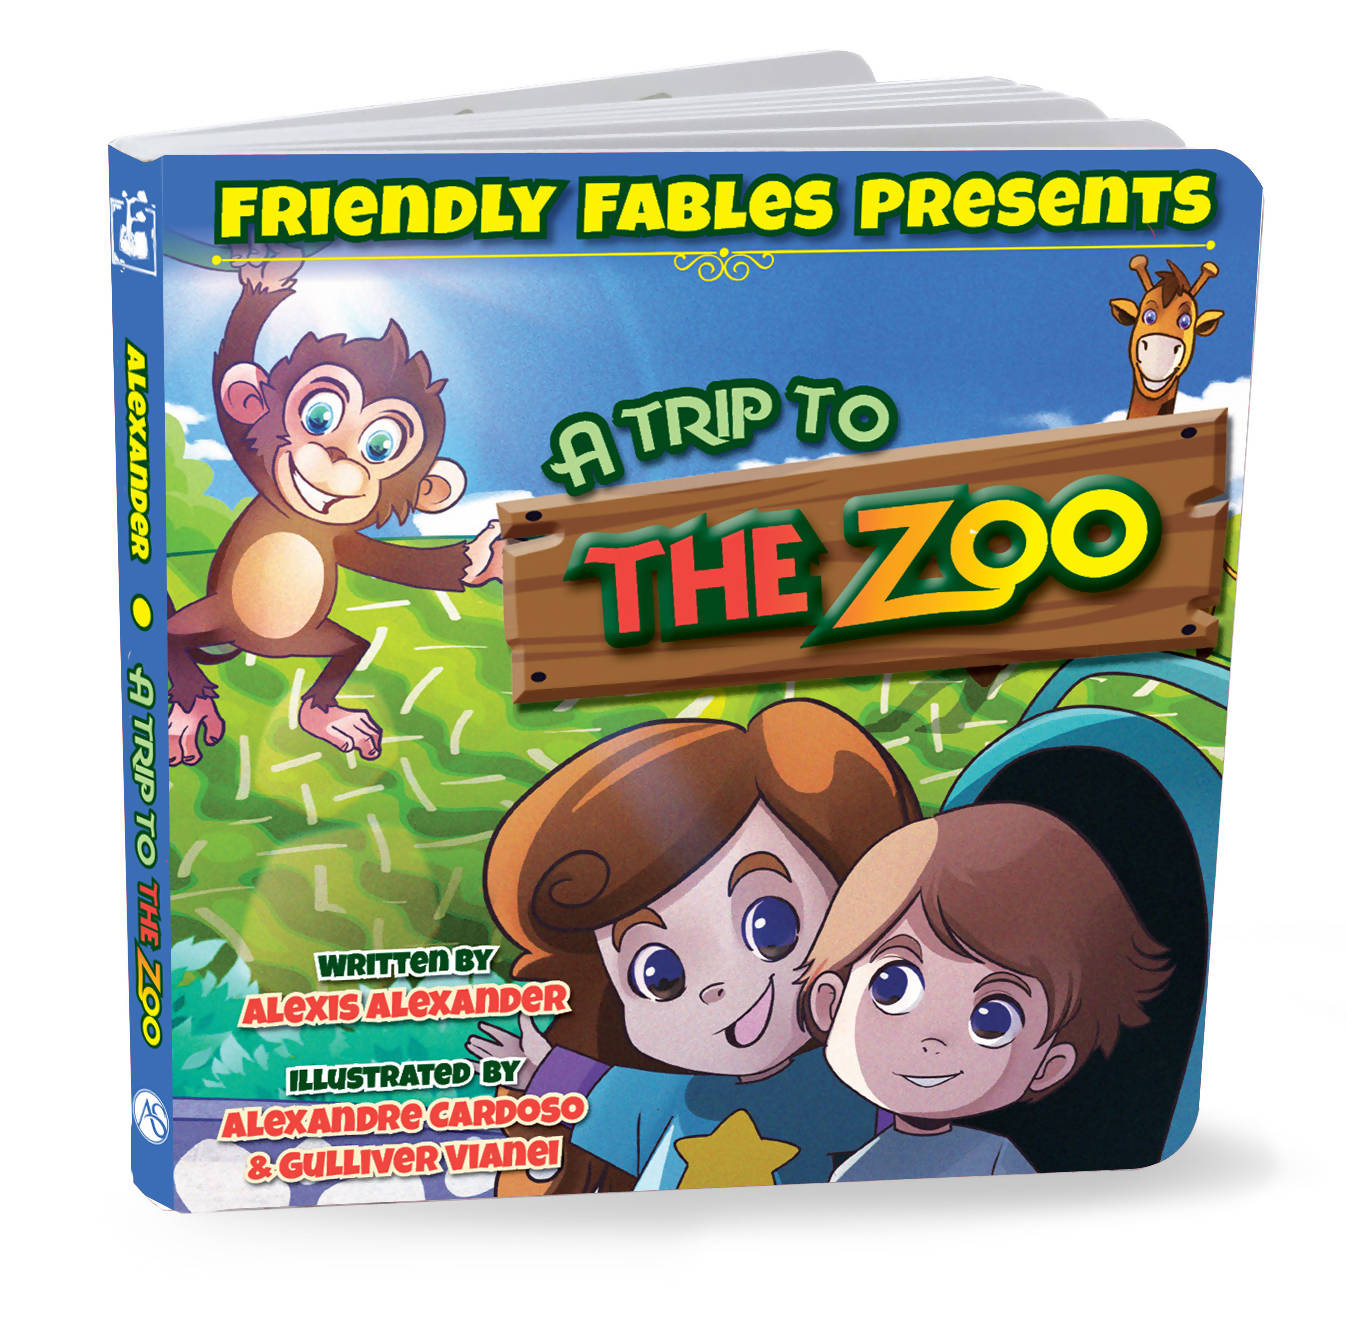 Friendly Fables | A Trip To The Zoo | 088 - 0104